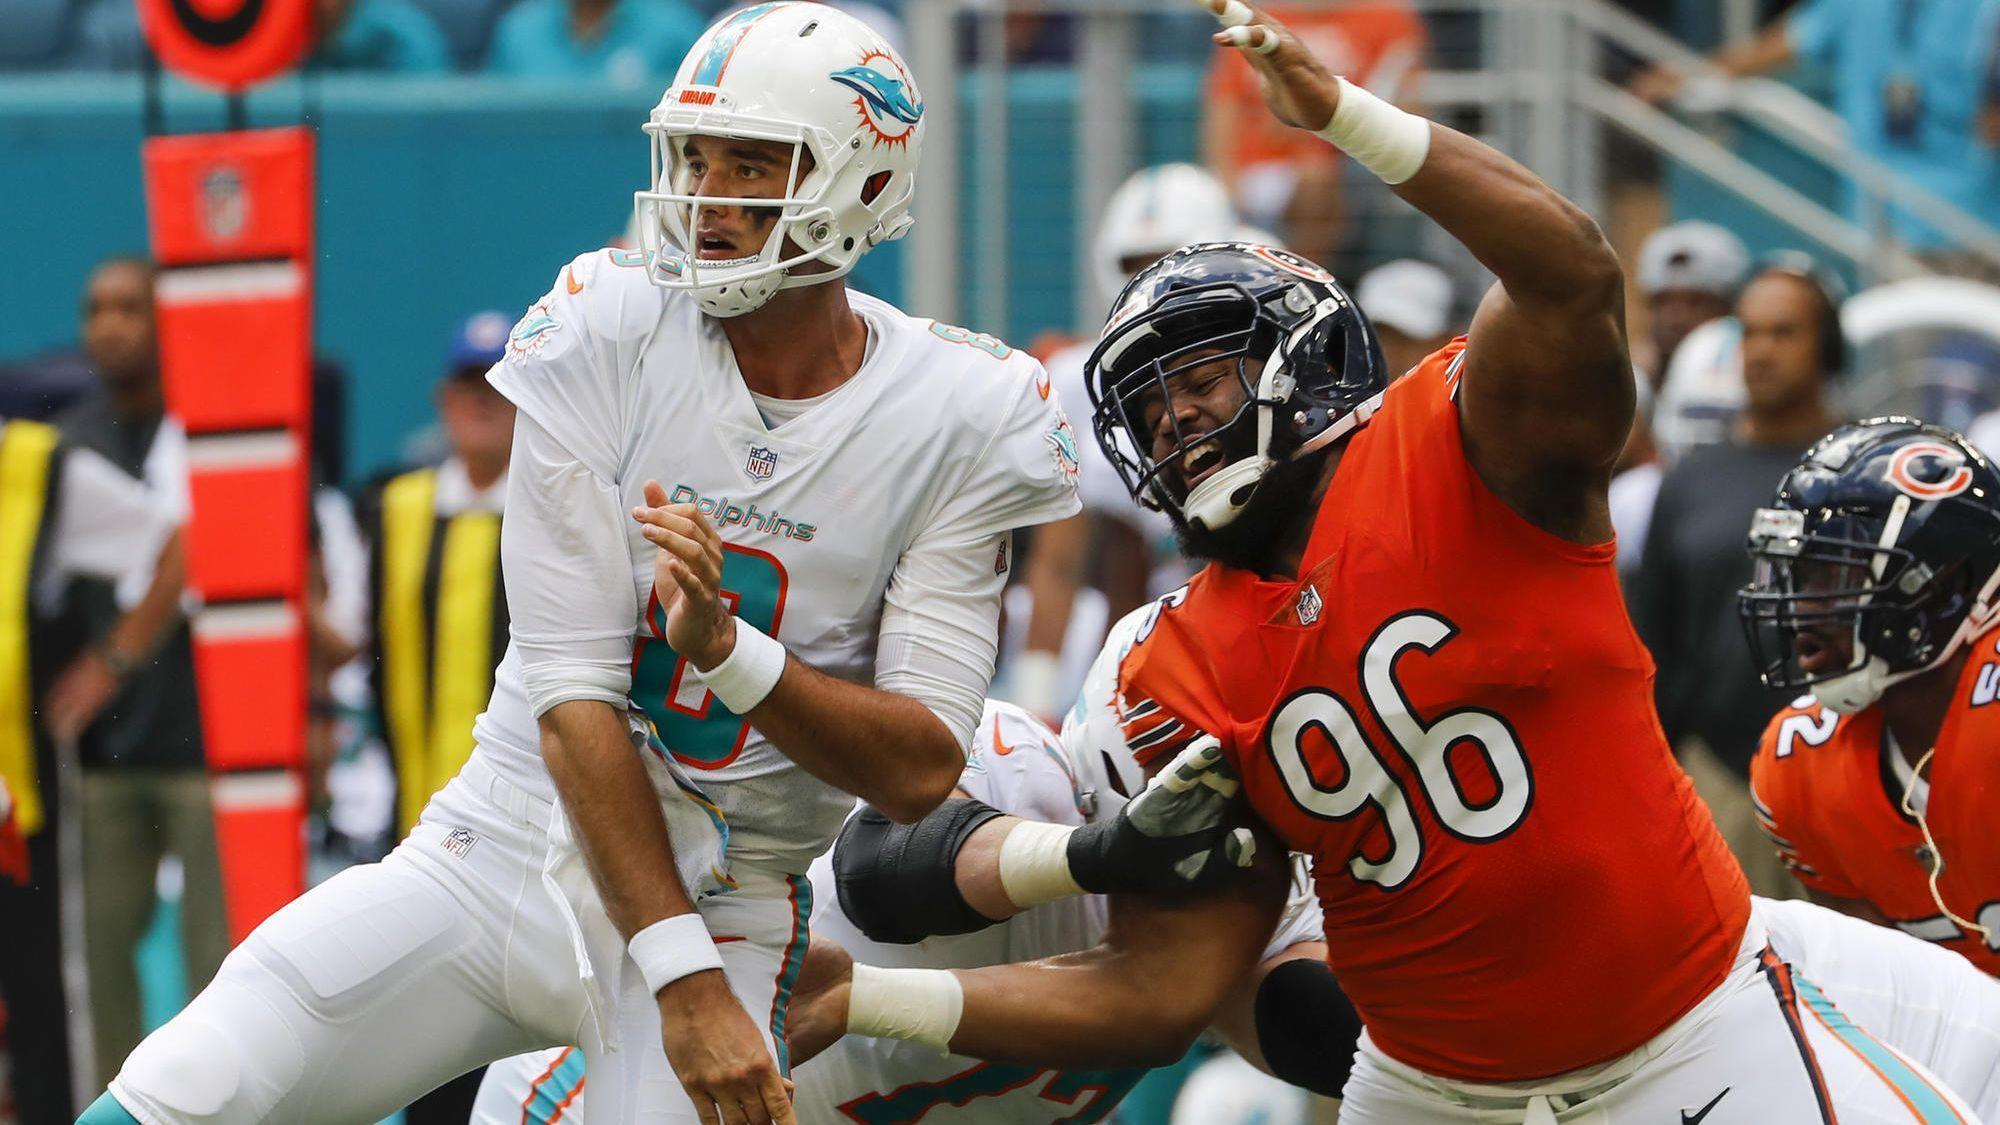 Ct-spt-bears-dolphins-week-6-observations-20181016